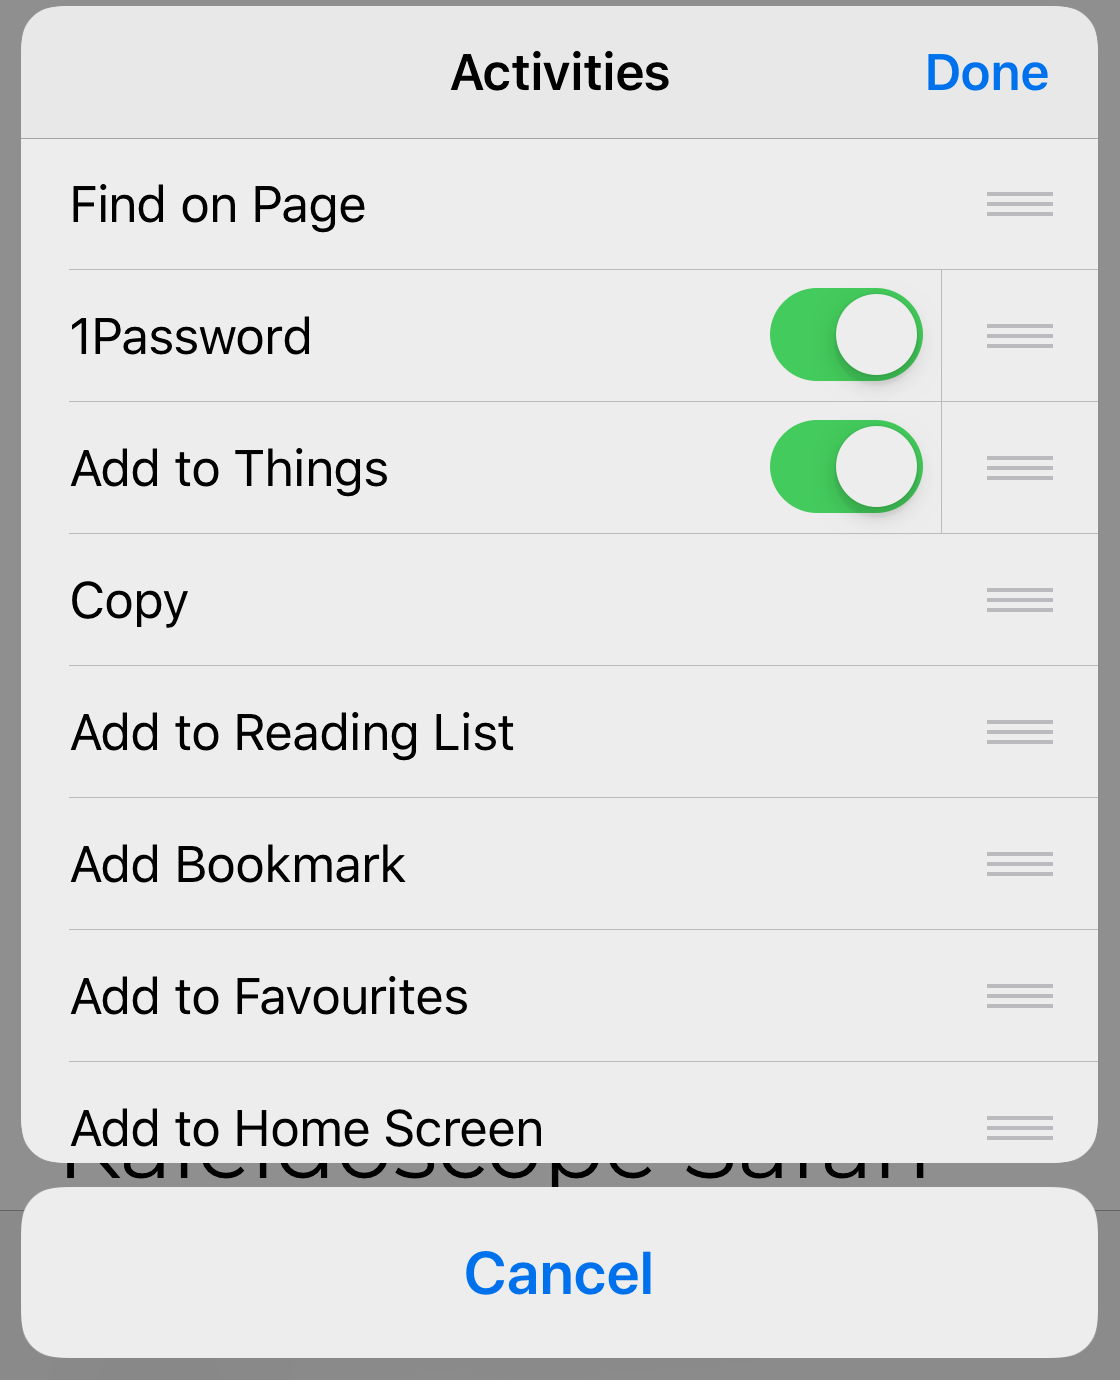 Move 1Password to the top of the Activities list